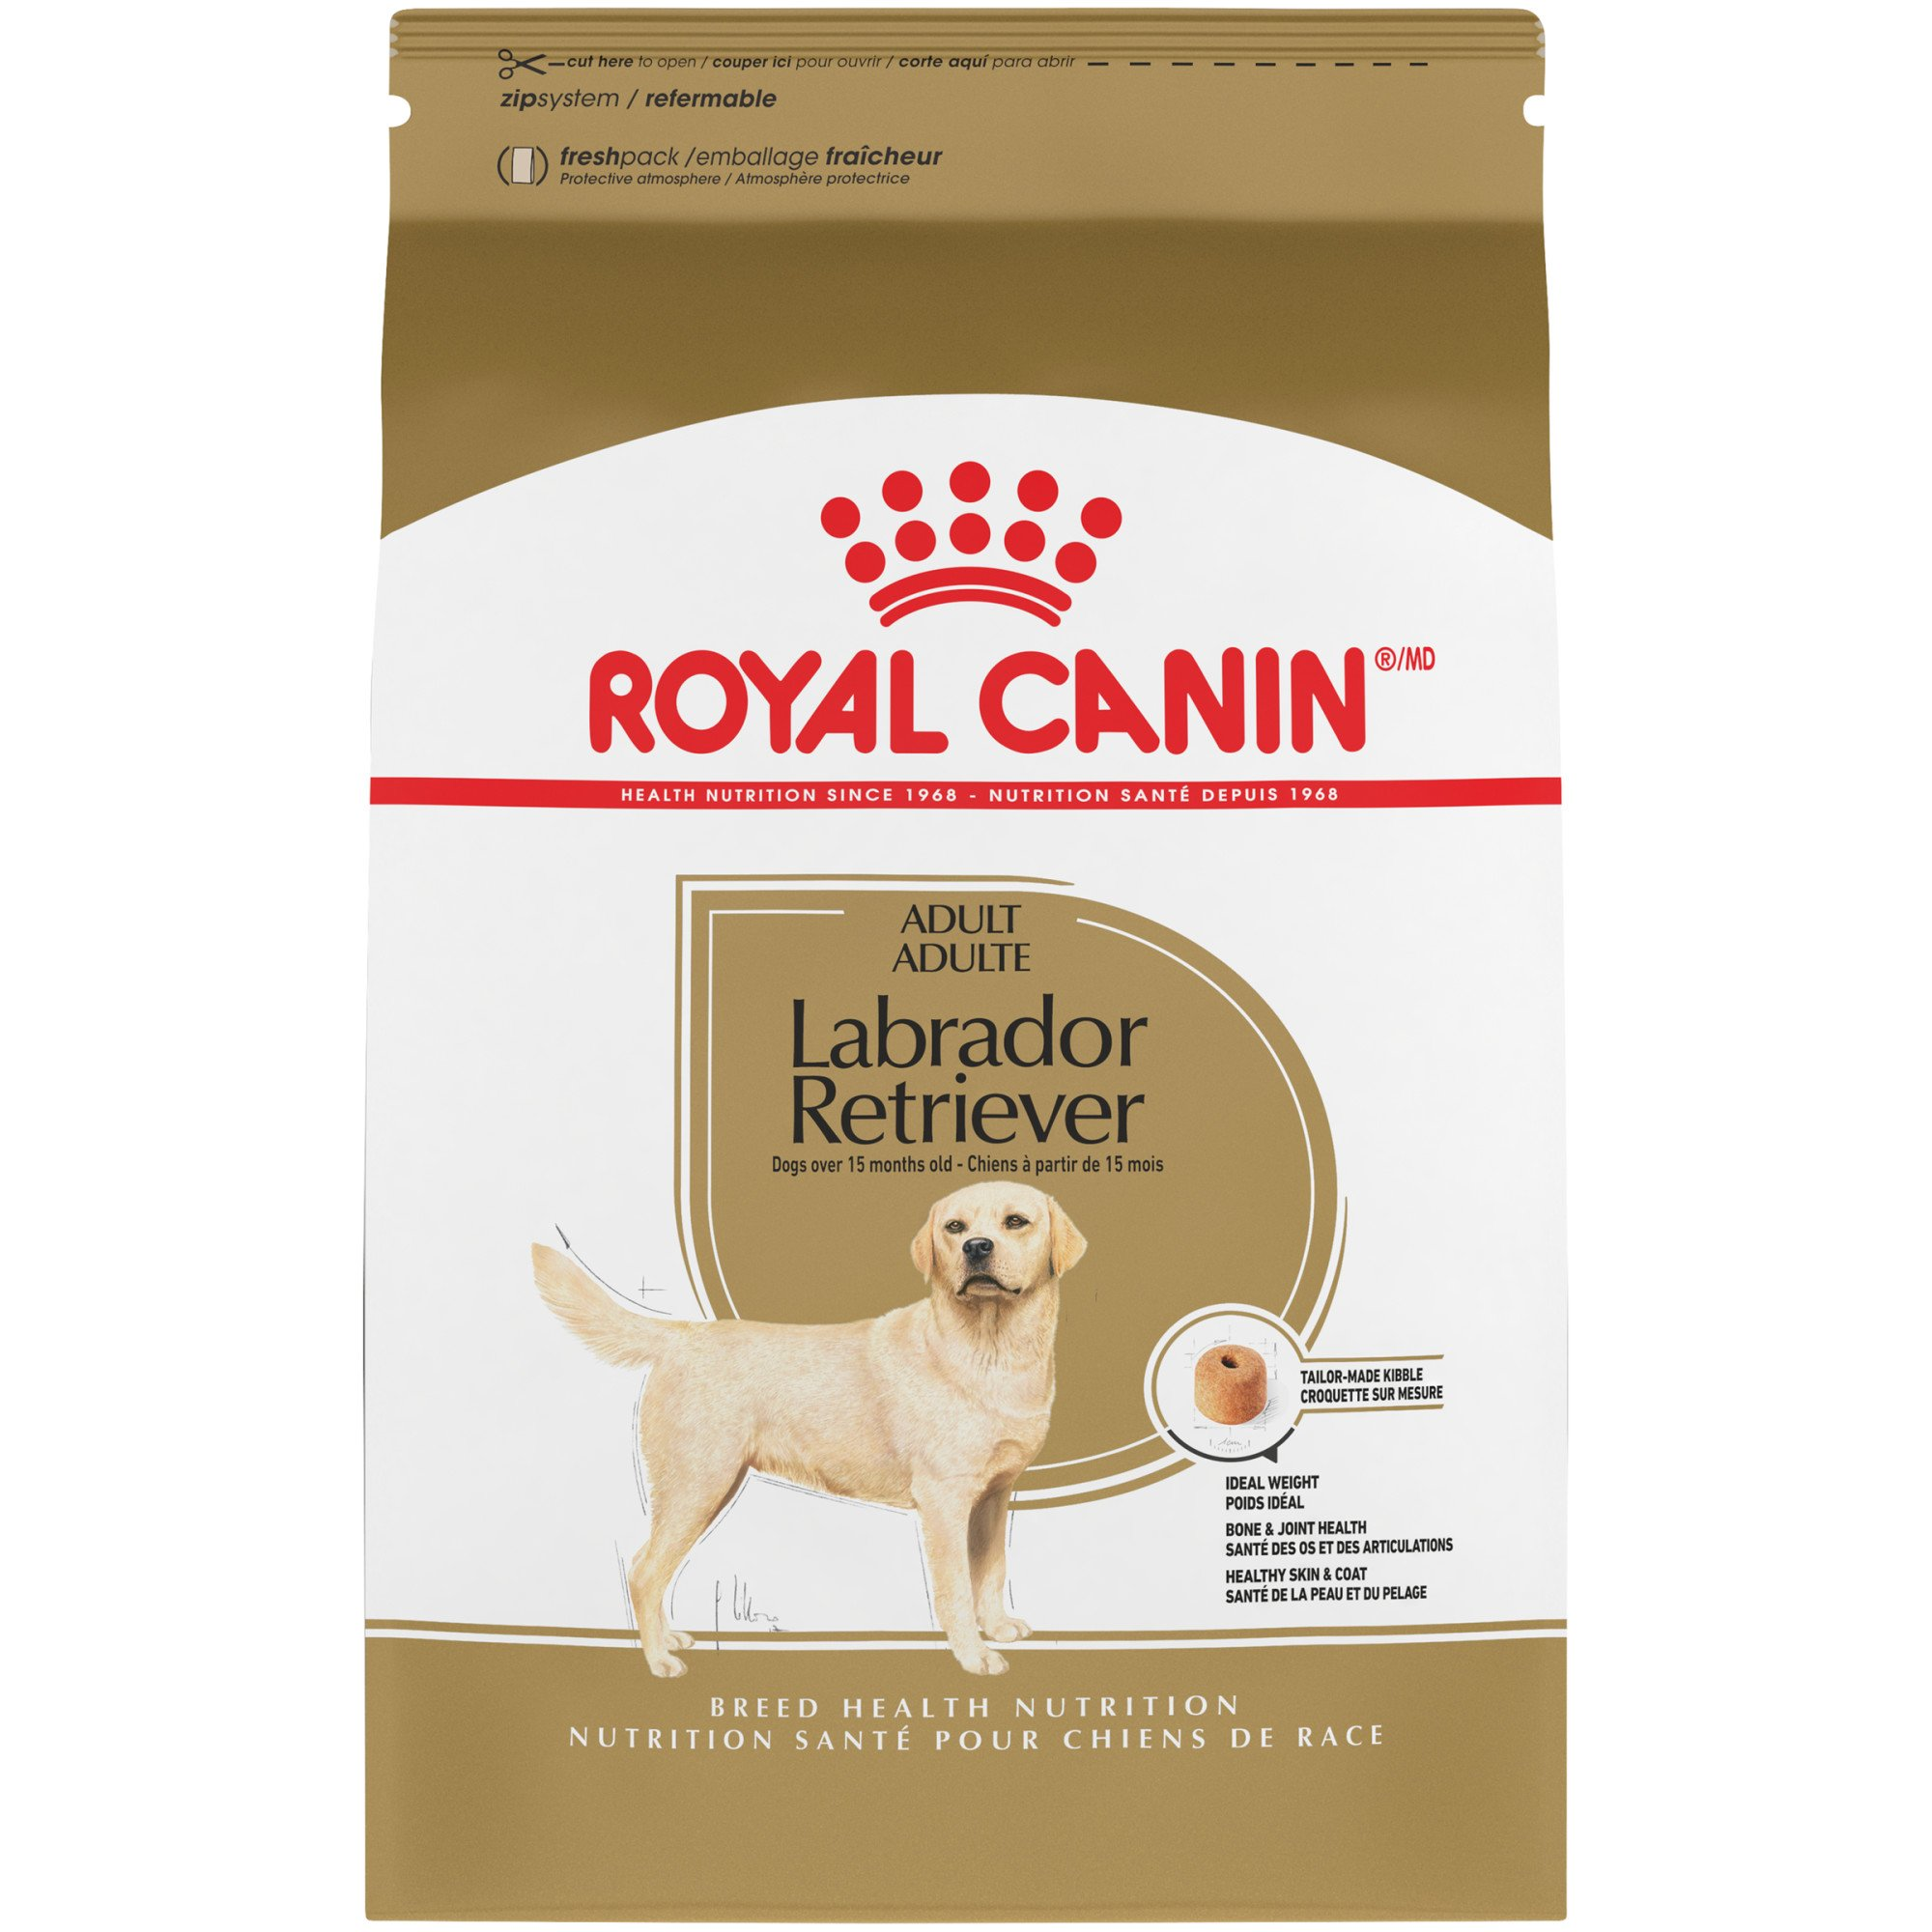 Royal Canin Breed Health Nutrition Labrador Retriever Adult Dry Dog Food 30 lbs.